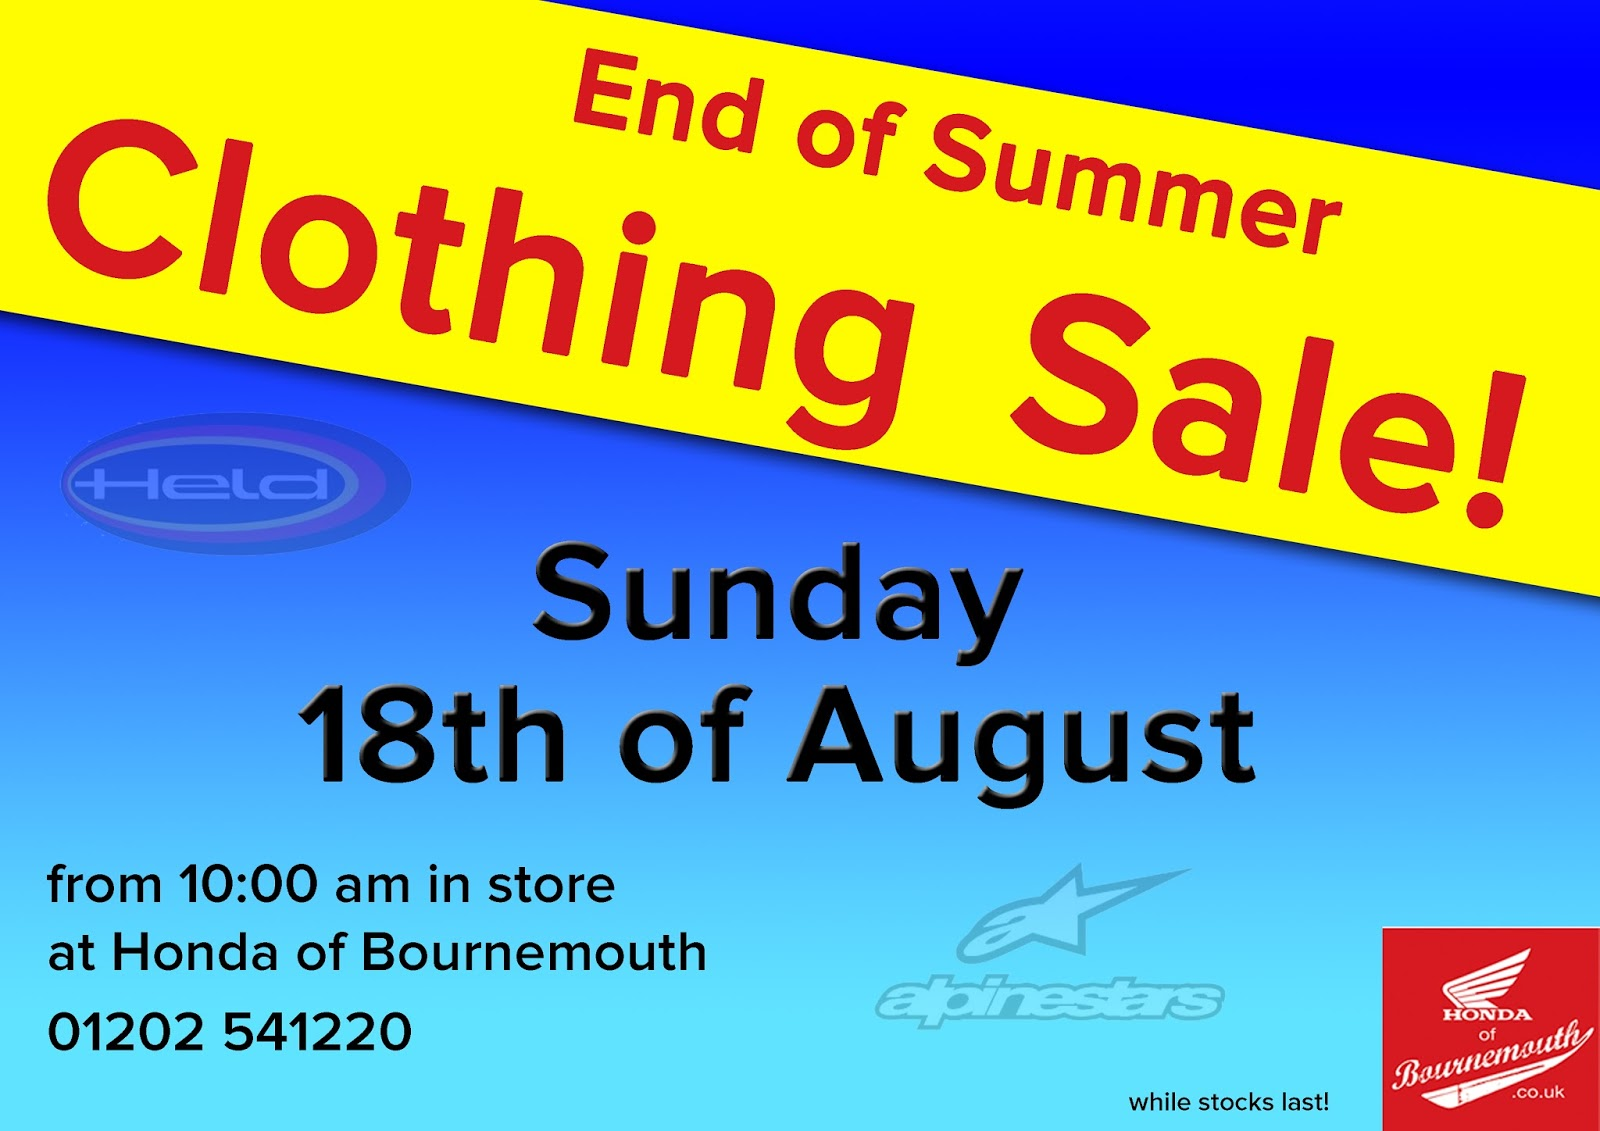 Honda of Bournemouth Blog: End of Summer Clothing Sale at ...